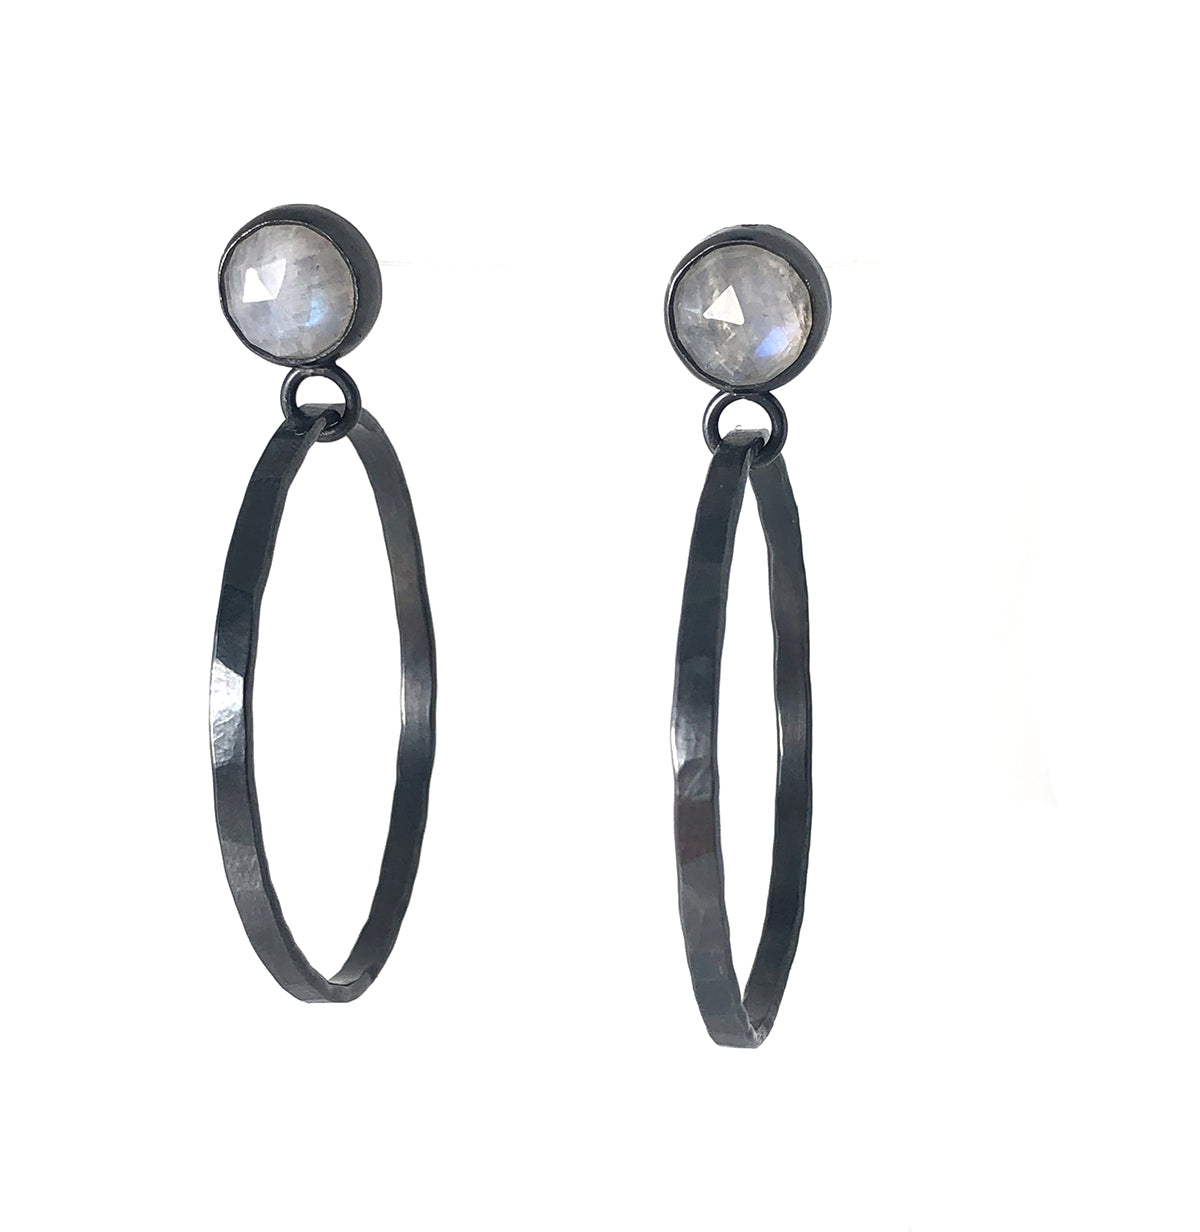 Rainbow Moonstone Hoop Earrings set in oxidized sterling silver.  Handmade by Alex Lozier Jewelry. Season of the Witch collection.